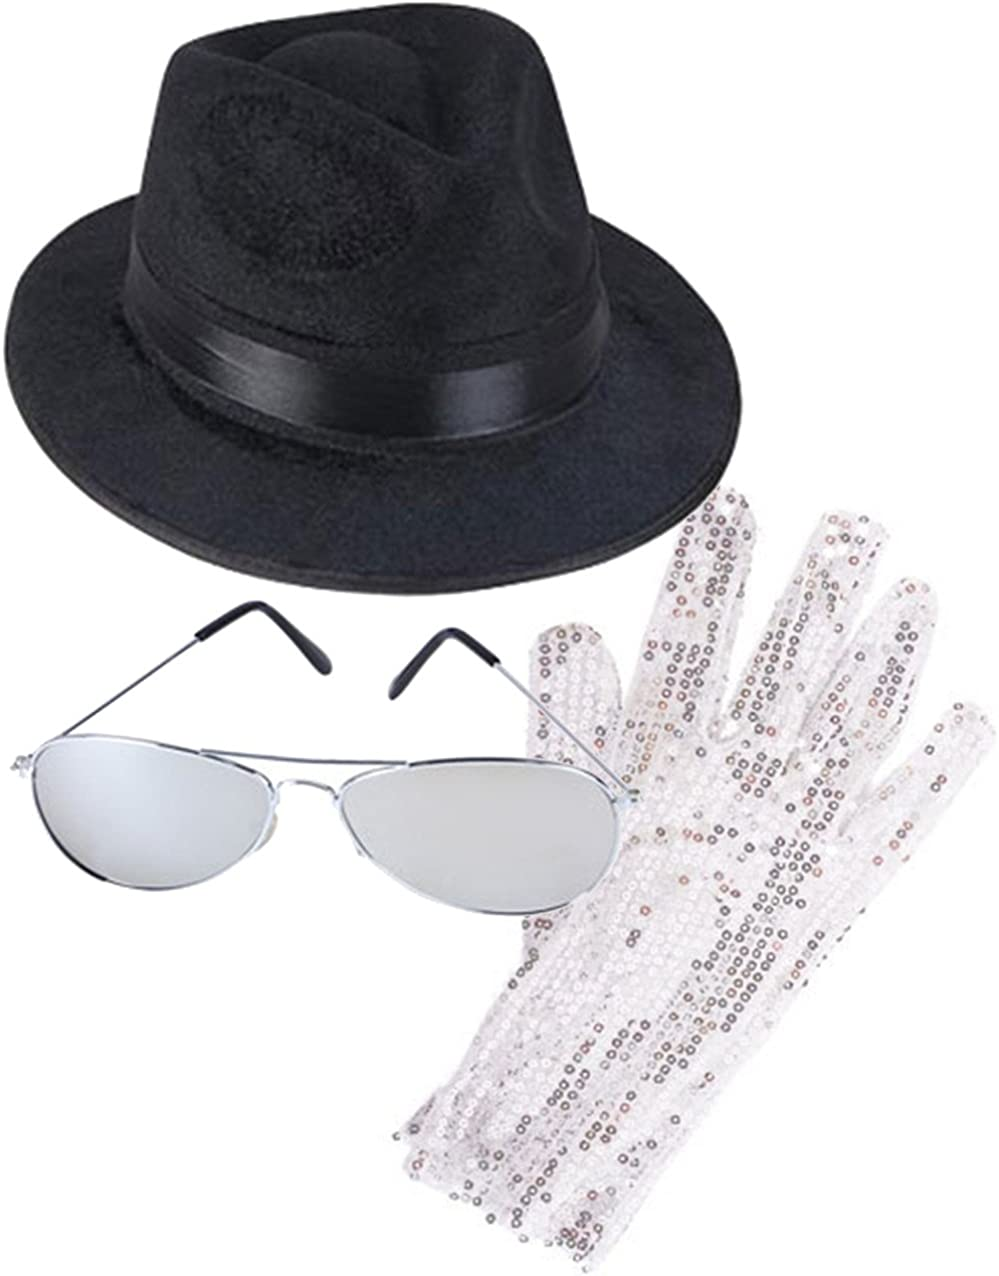 MJ King of Pop Costume Bundle with Fedora Hat Glove and Sunglasses Black/Silver